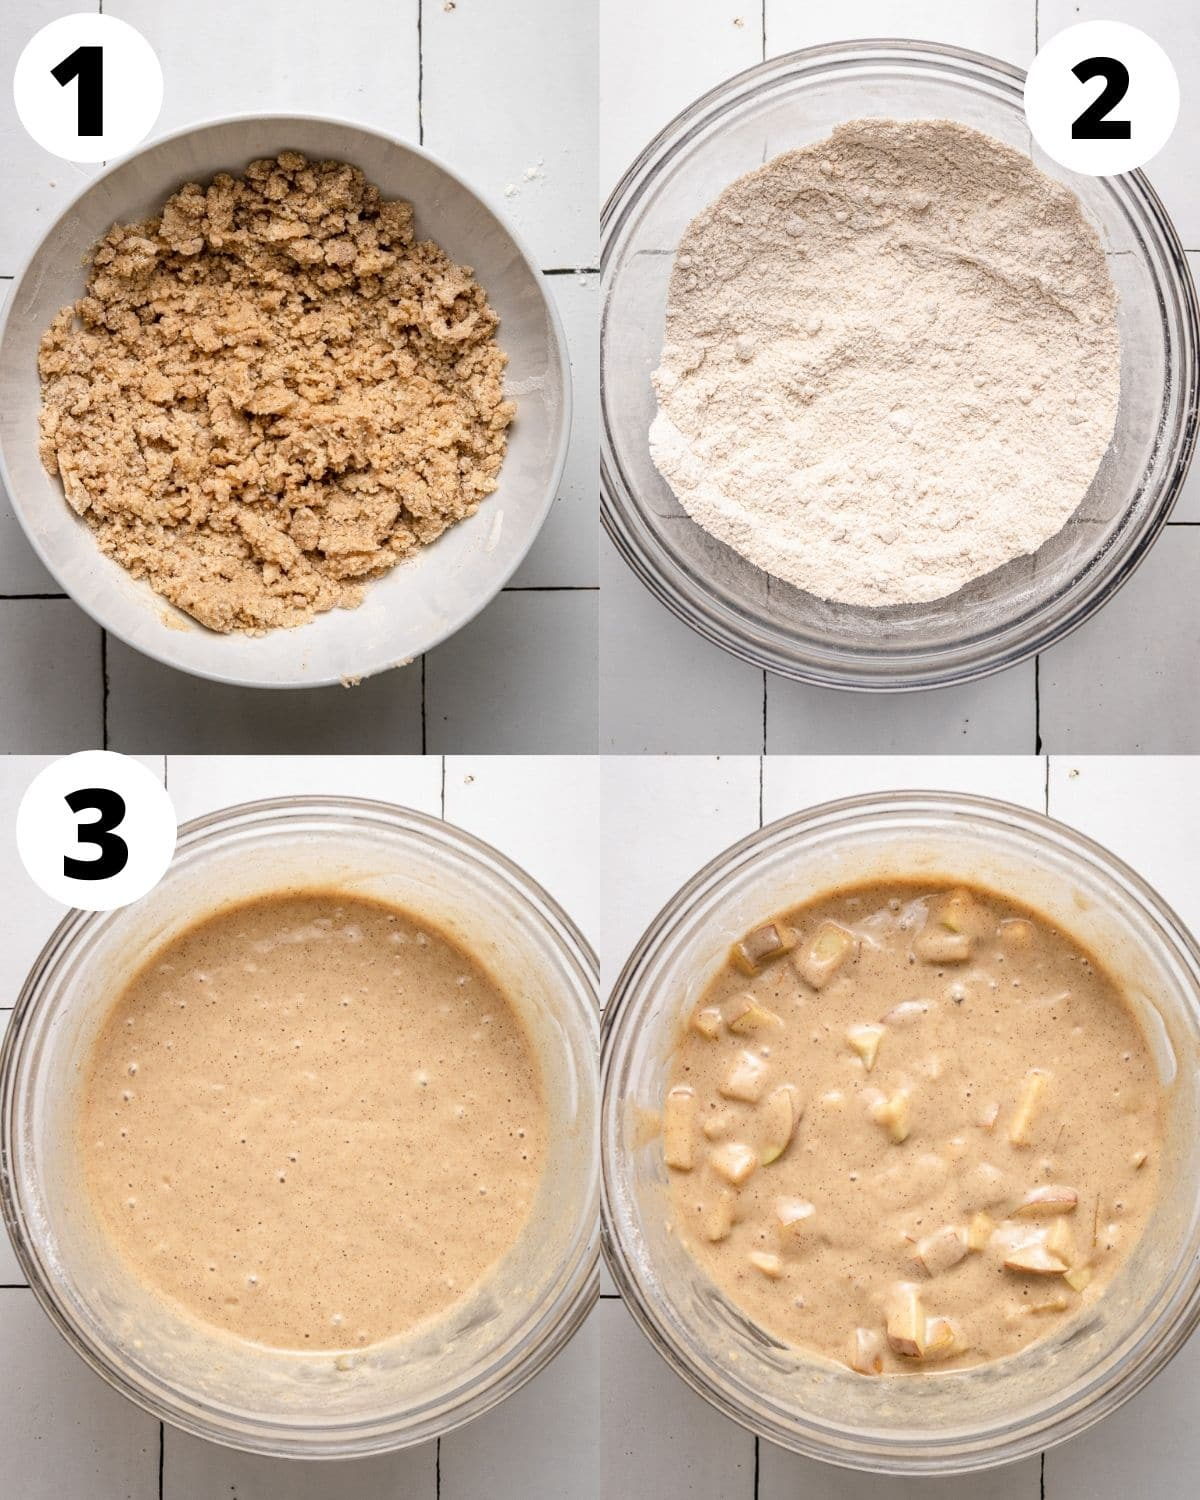 instructions showing how to make vegan apple cake